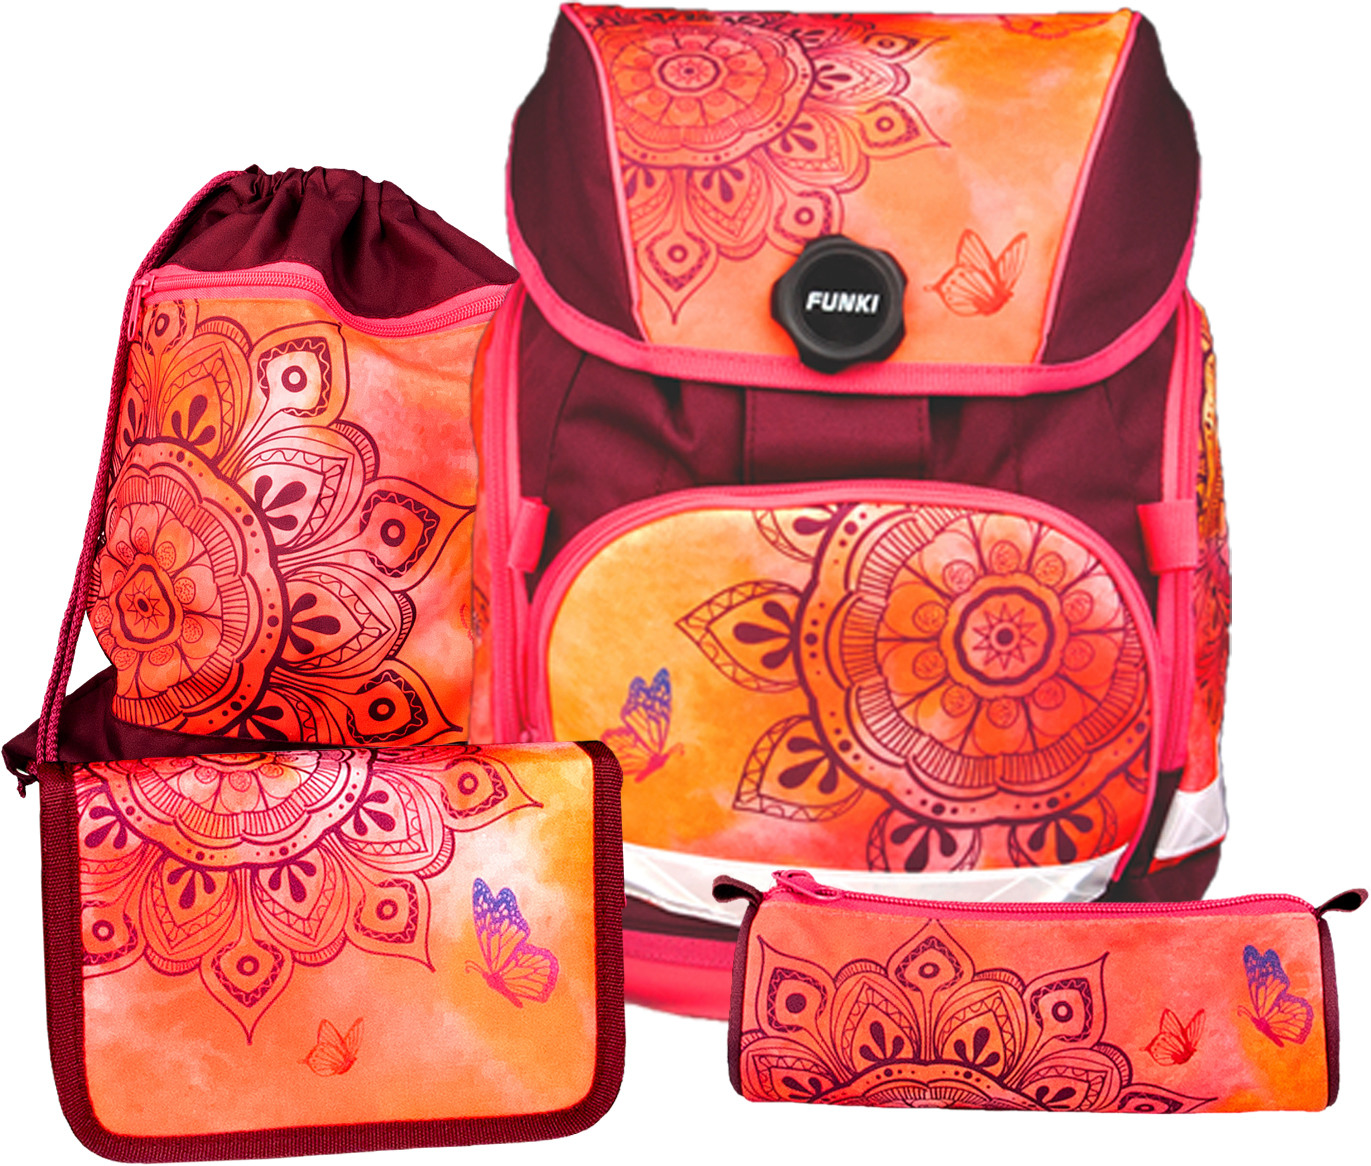 FUNKI Joy-Bag Set Mandala 6011.518 orange/rouge foncé 4 pcs.